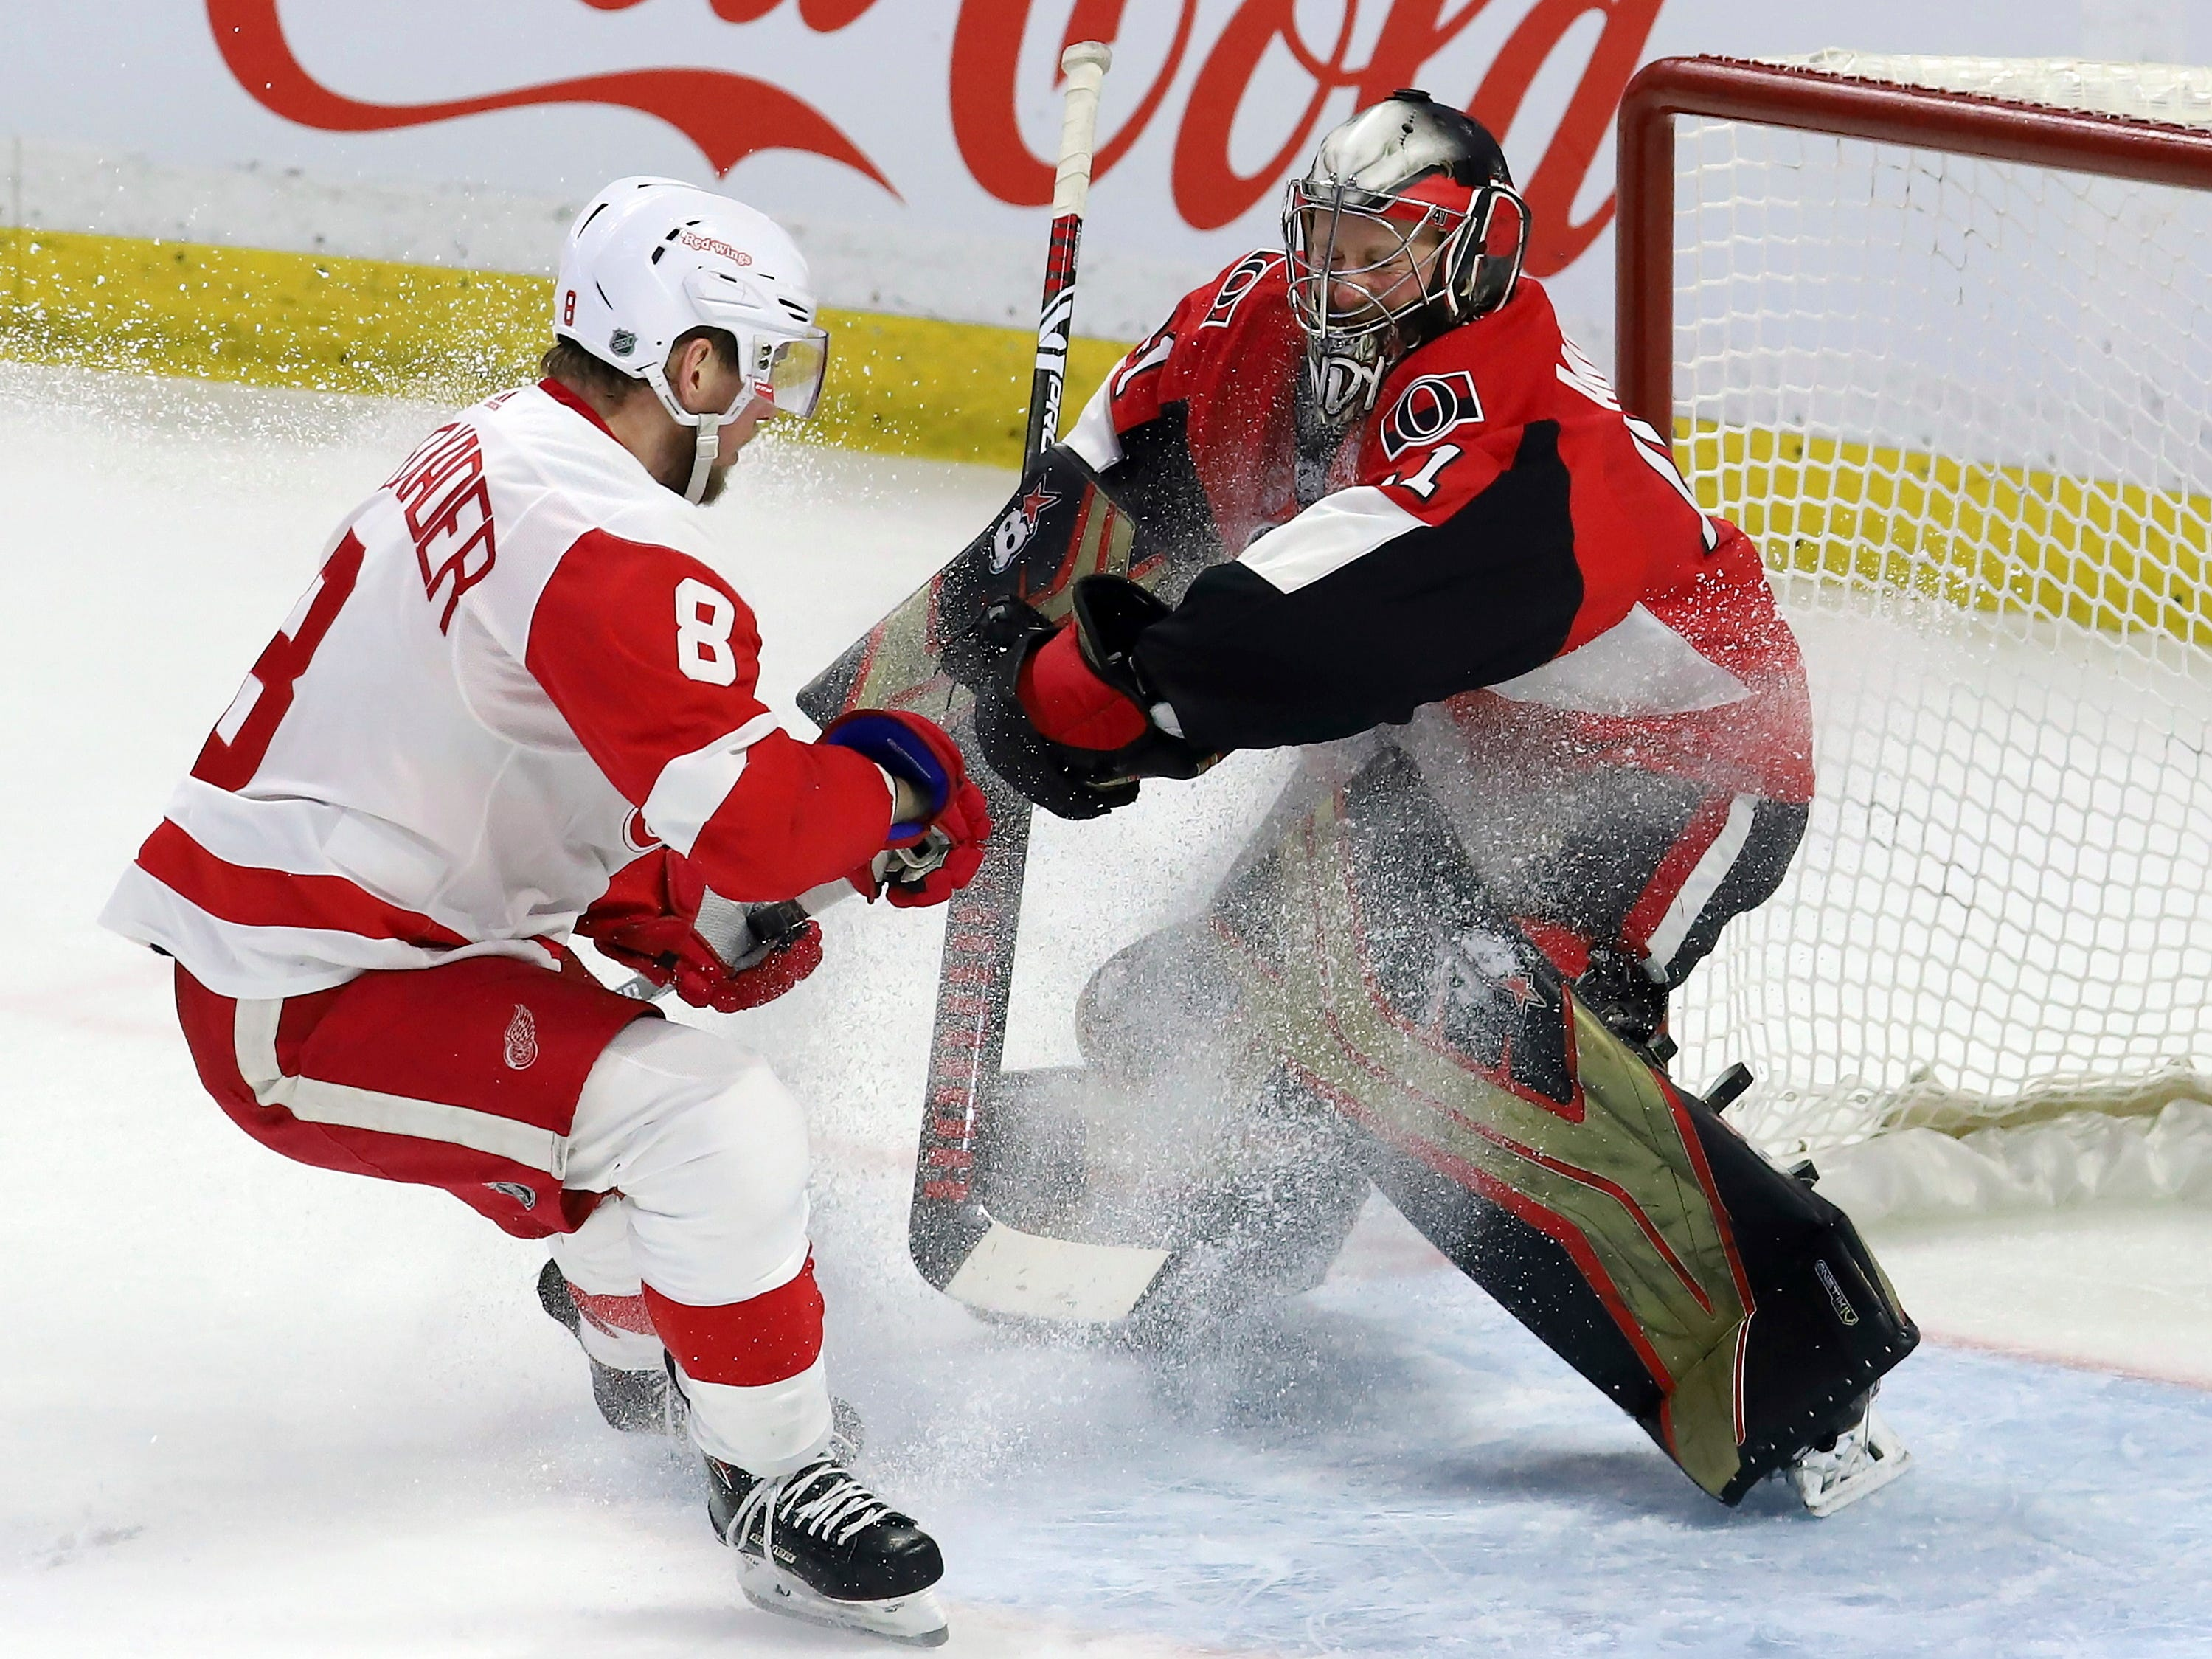 Ottawa Senators' Craig Anderson (41) makes a save on a breakaway from Detroit Red Wings' Justin Abdelkader (8) during the third period.